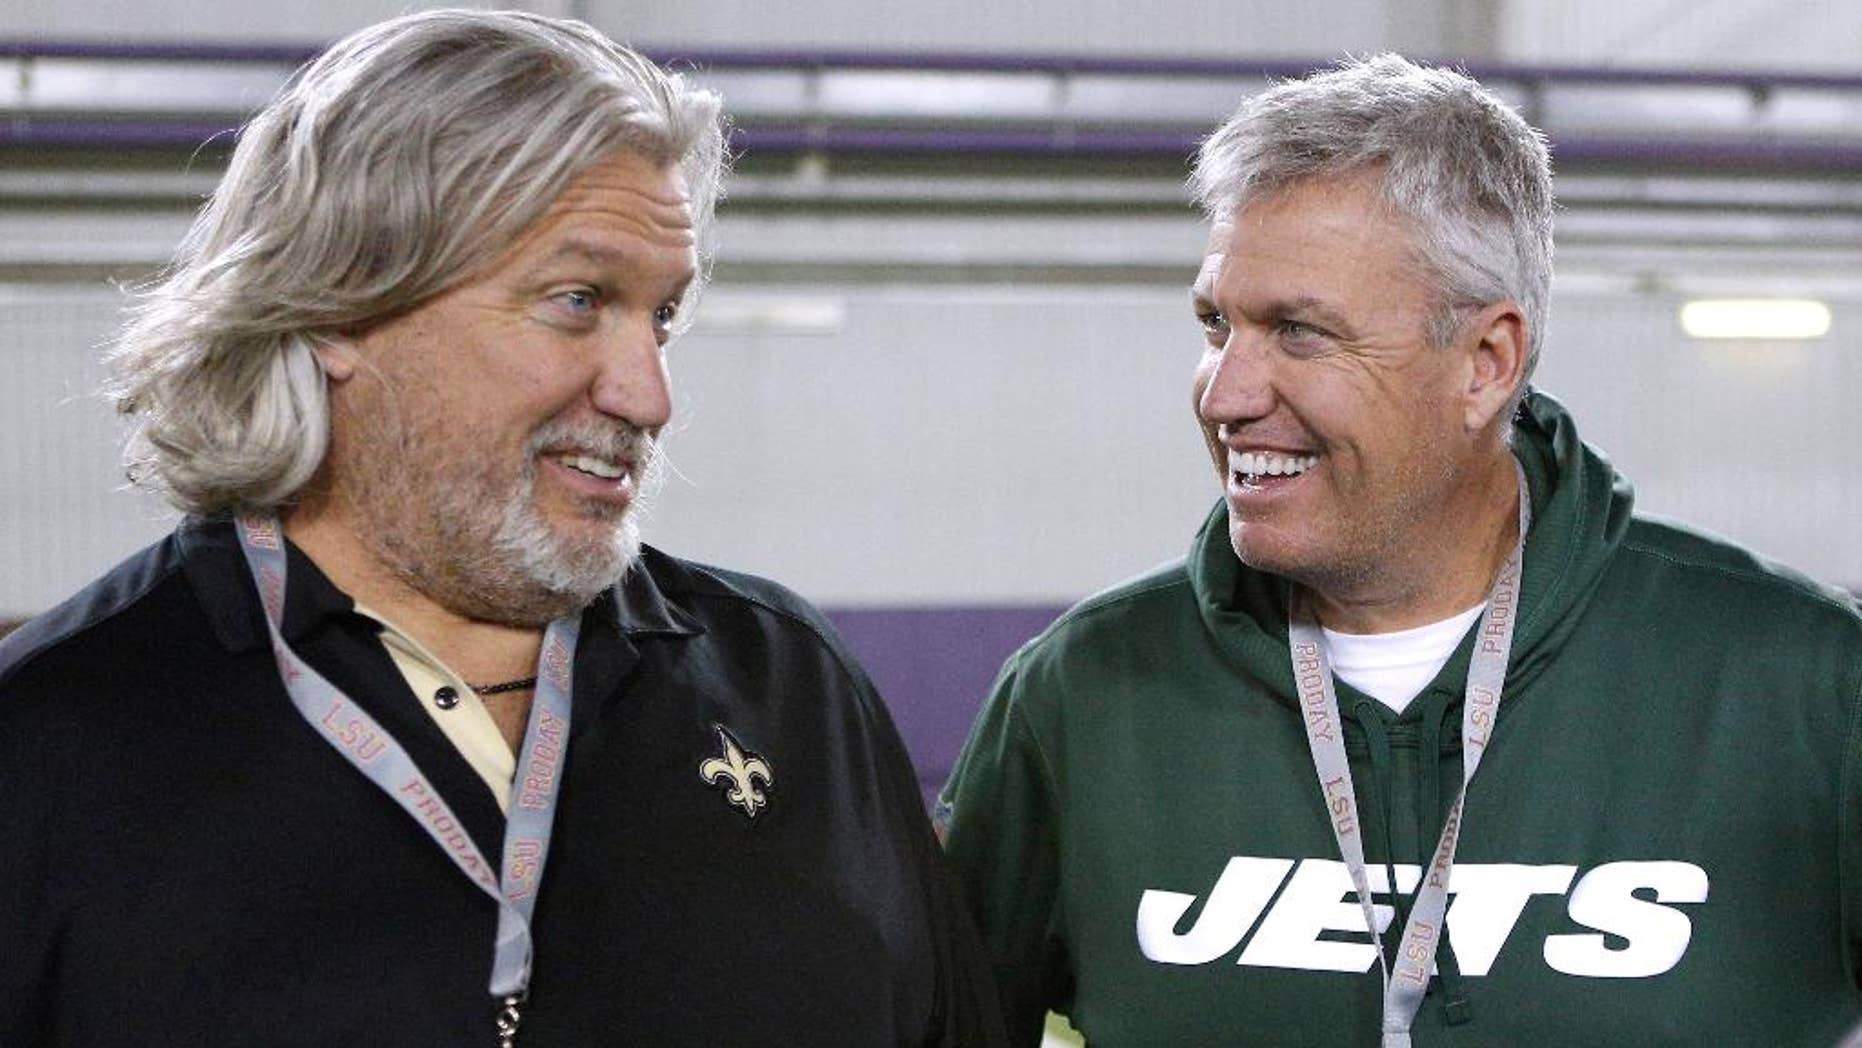 FILE - In this April 9, 2014, file photo, New Orleans Saints defensive coordinator Rob Ryan, left, and New York Jets head coach Rex Ryan talk to each other during NFL football pro day in Baton Rouge, La. The Ryan twins are best known for their defensive acumen. After four weeks, they are looking defenseless. Rex's Jets are 1-3, have lost three in a row and can't cover anyone in the passing game. Rob's Saints, he's the defensive coordinator under coach Sean Payton,  have been even worse than Rex's bunch. (AP Photo/Jonathan Bachman, File)